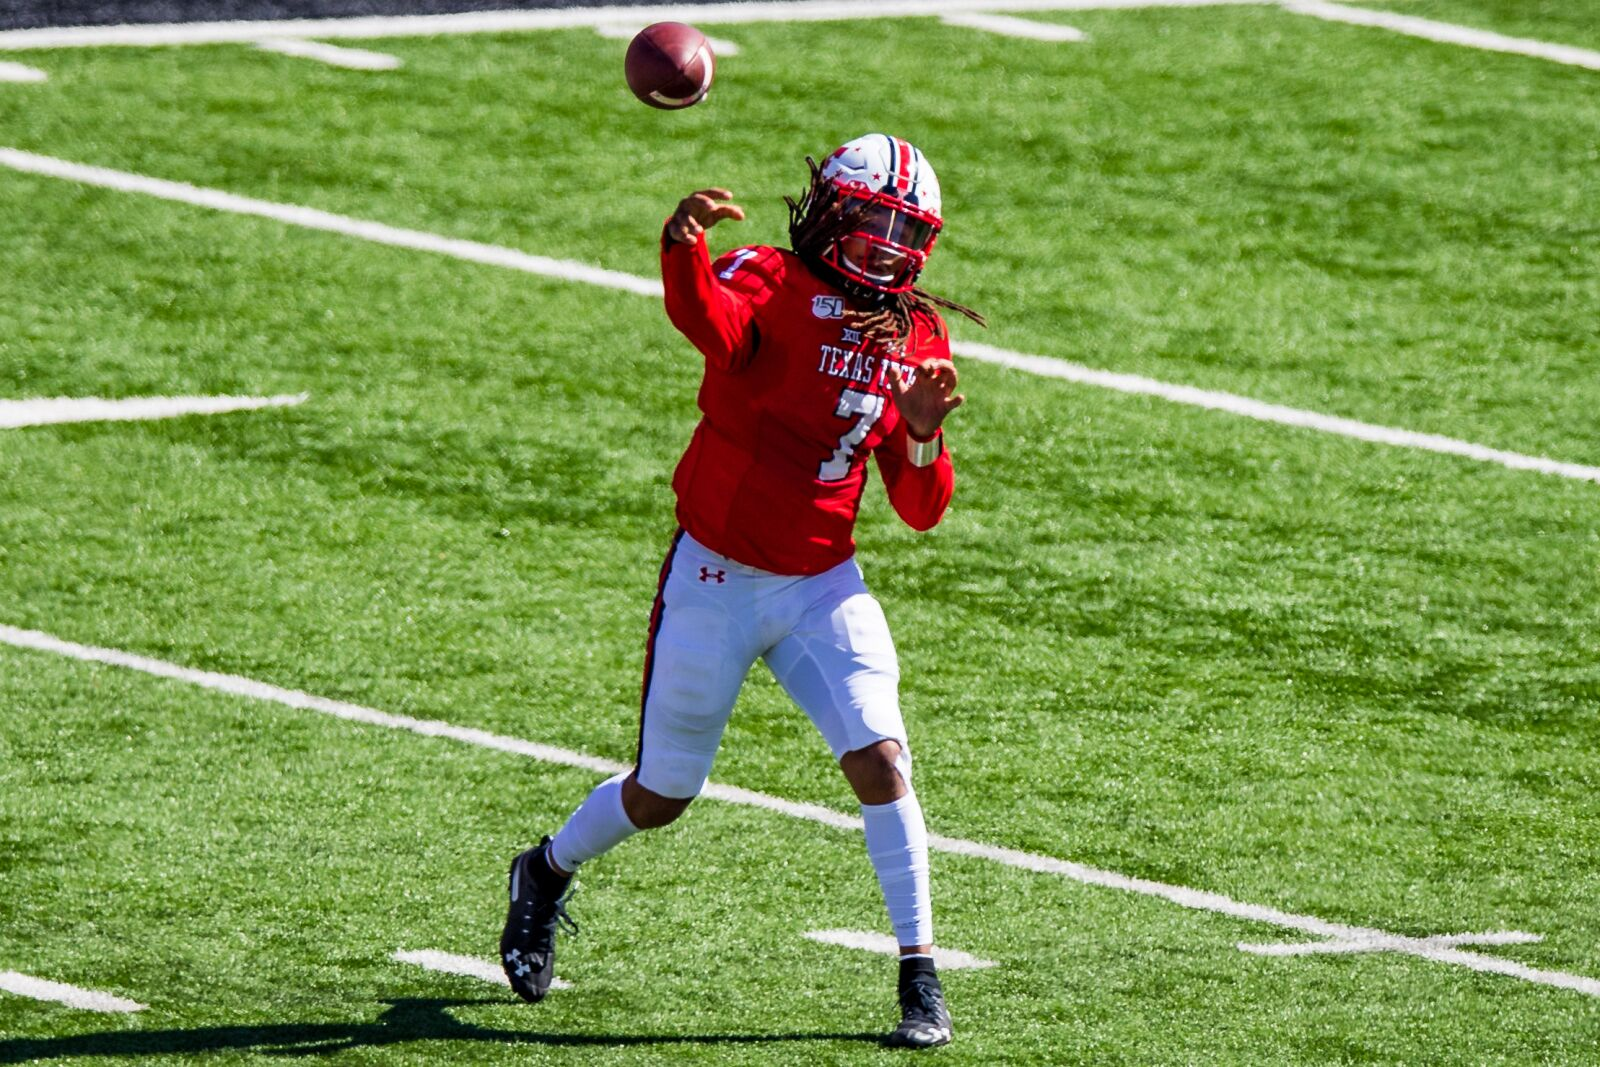 Texas Tech football: We had better get used to seeing wide receiver screens - Wreck'Em Red